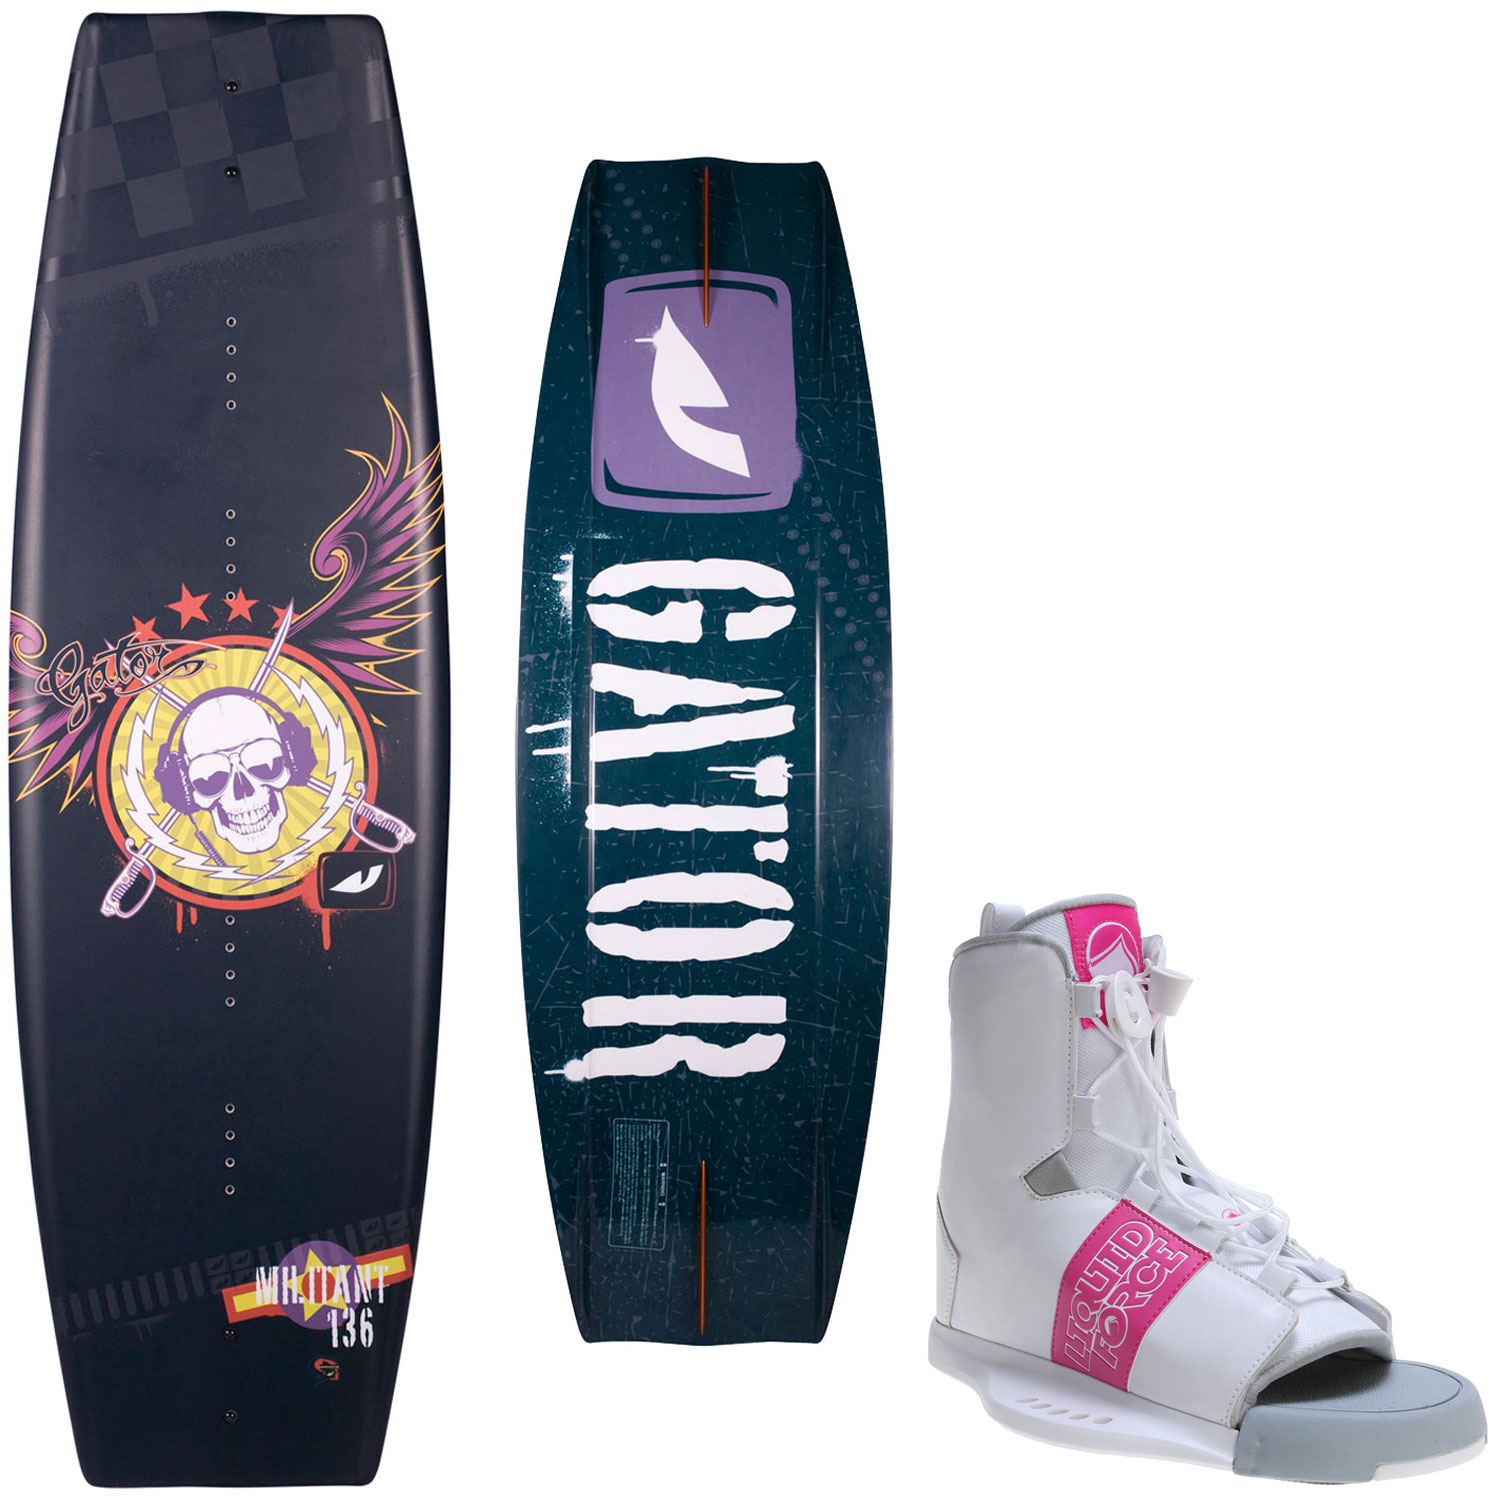 Gator Boards Militant Wakeboard 136cm + Liquid Force Bindings Mens Sz 8-12 by Gator Boards